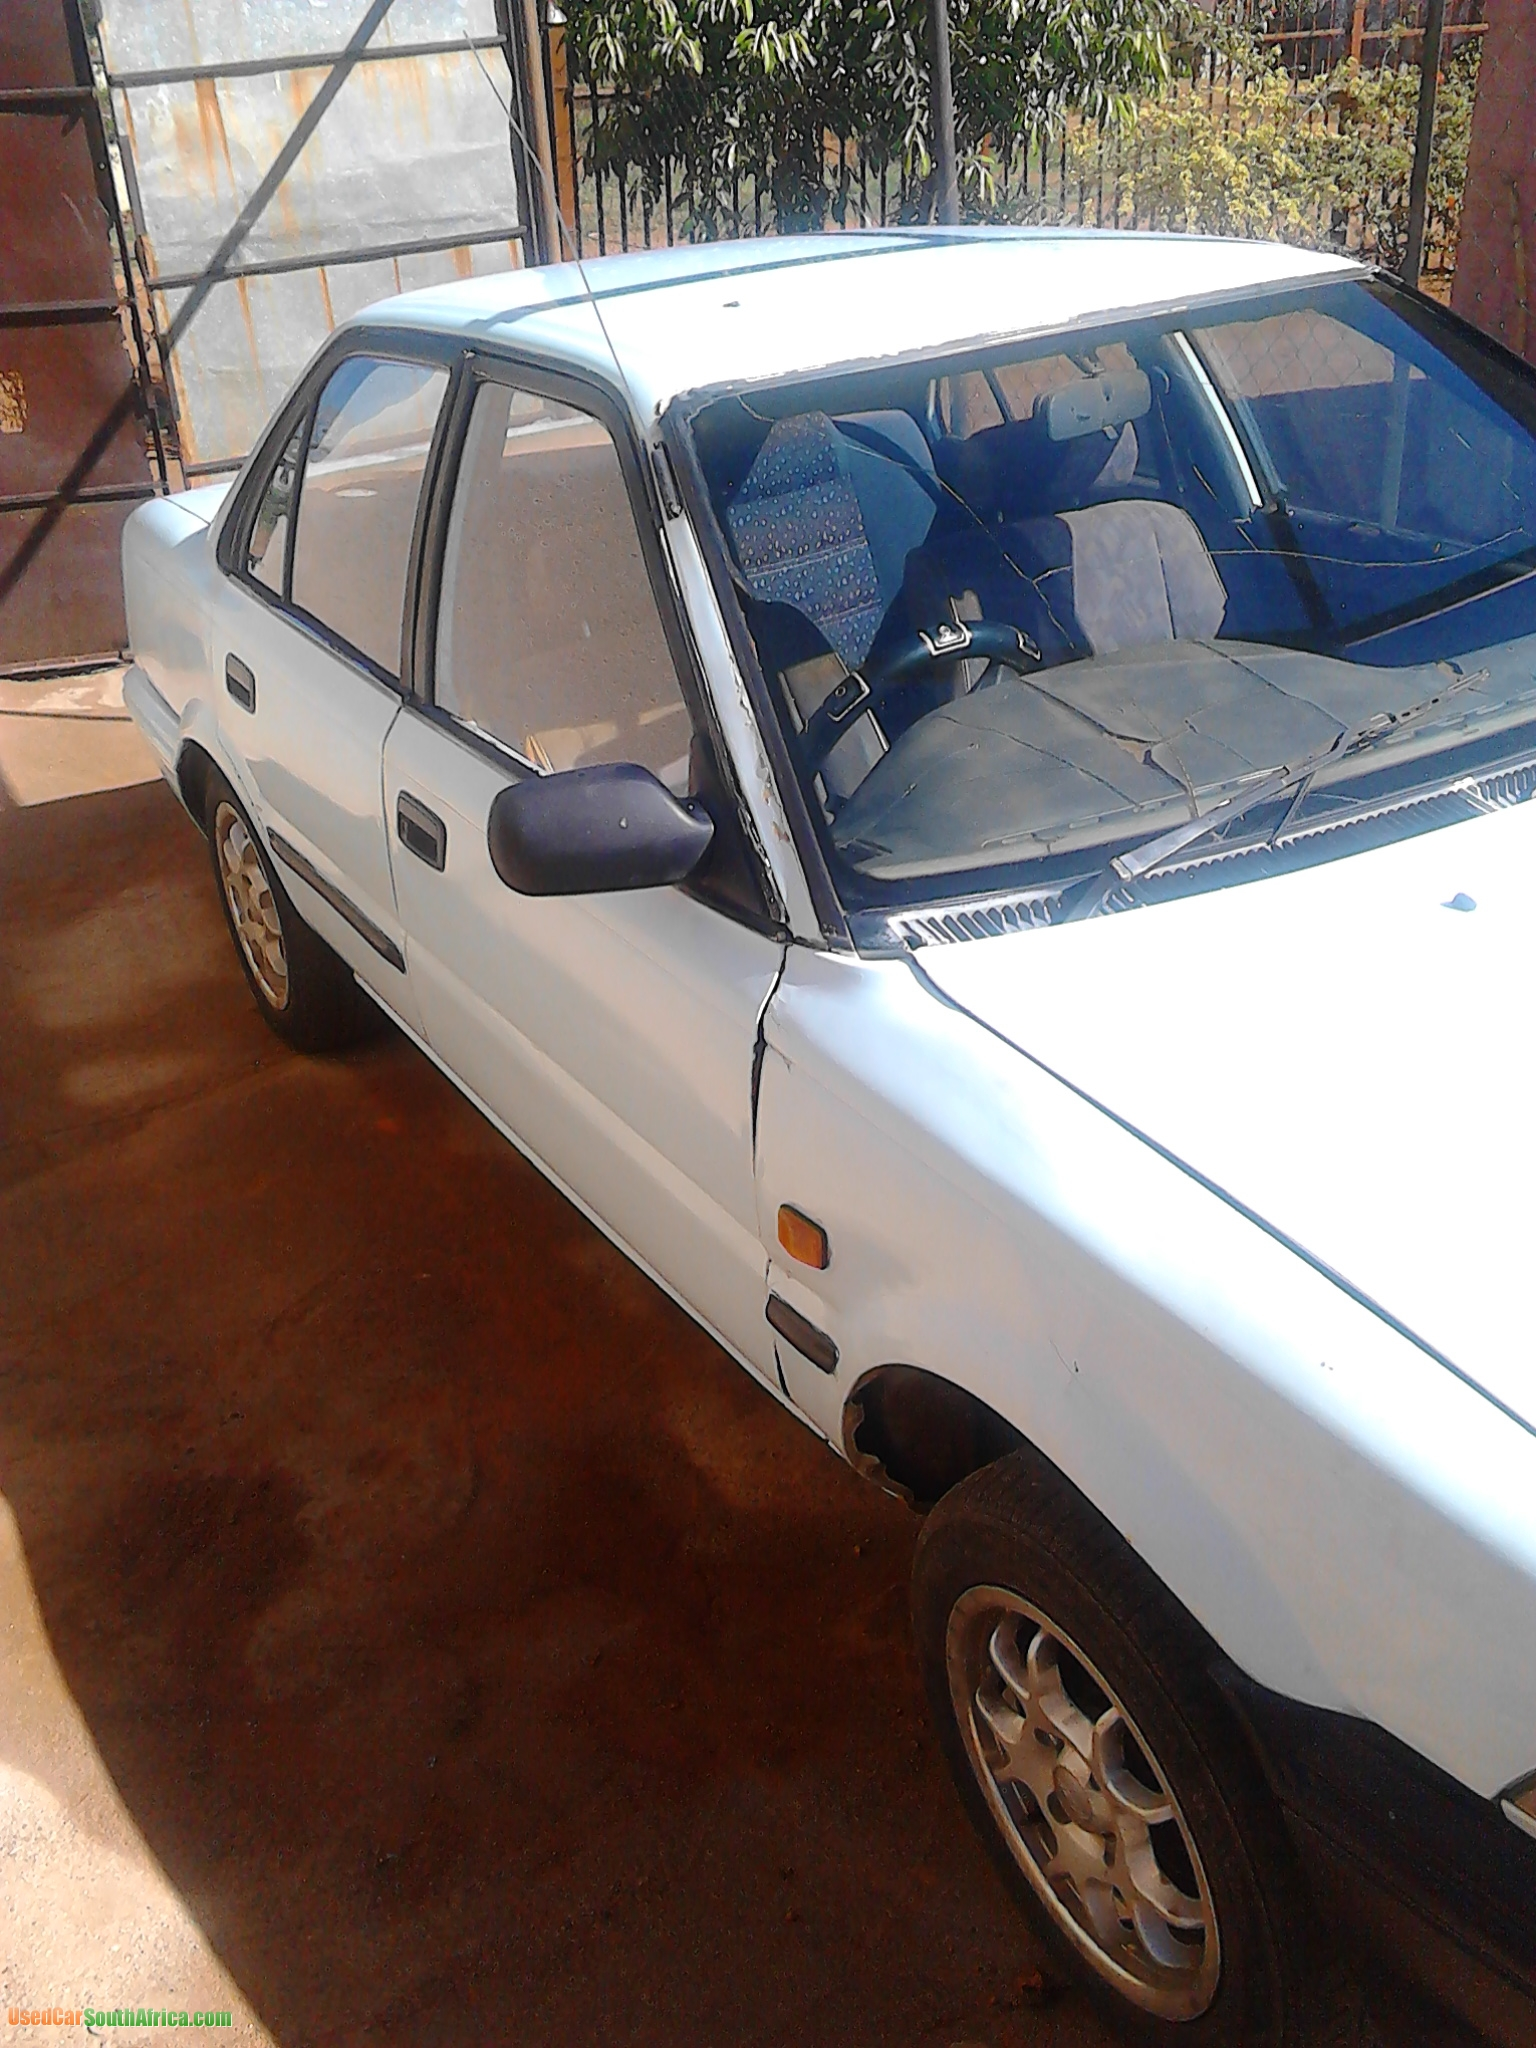 1989 toyota corolla 1 3 used car for sale in pretoria south gauteng south africa usedcarsouthafrica 0